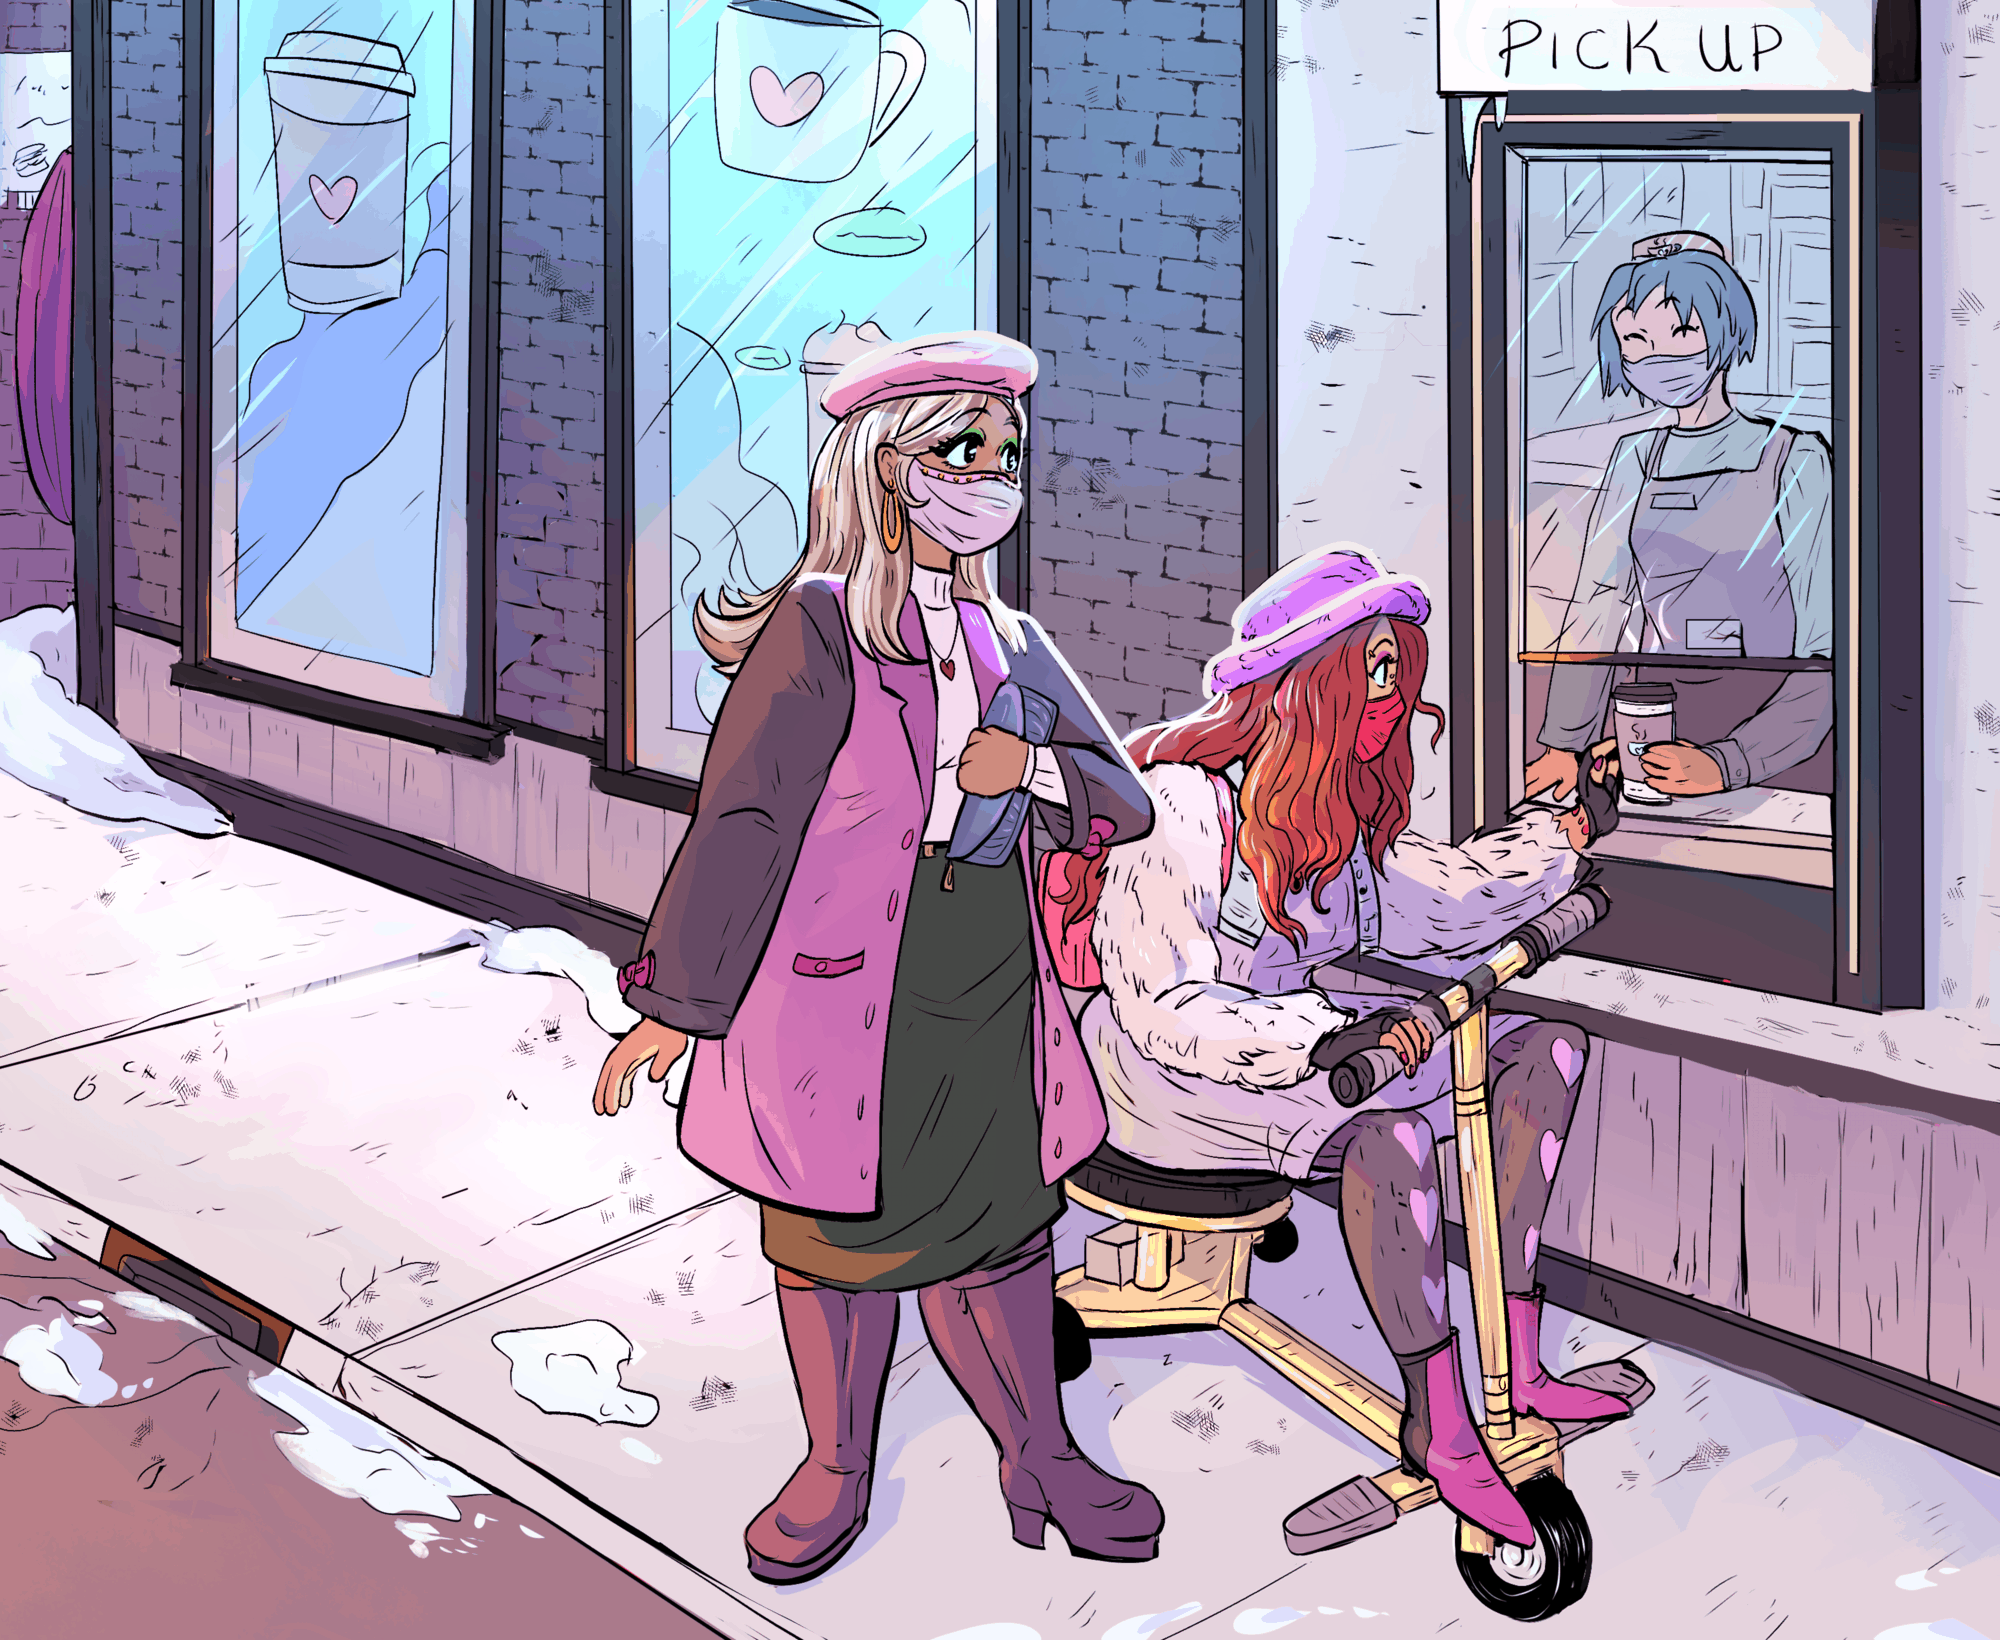 Two chic Black women grab coffee from an outdoor pick-up window. The woman closest to the barista is in a gold-customized travel mobility scooter and wears a fuzzy purple bucket hat, sweater dress, pink backpack, and red face mask. Next to her, the second woman waits in a pink coat and beret. Bits of snow gather on the ground and sidewalk while the cafe's windows are decorated with coffee decals.